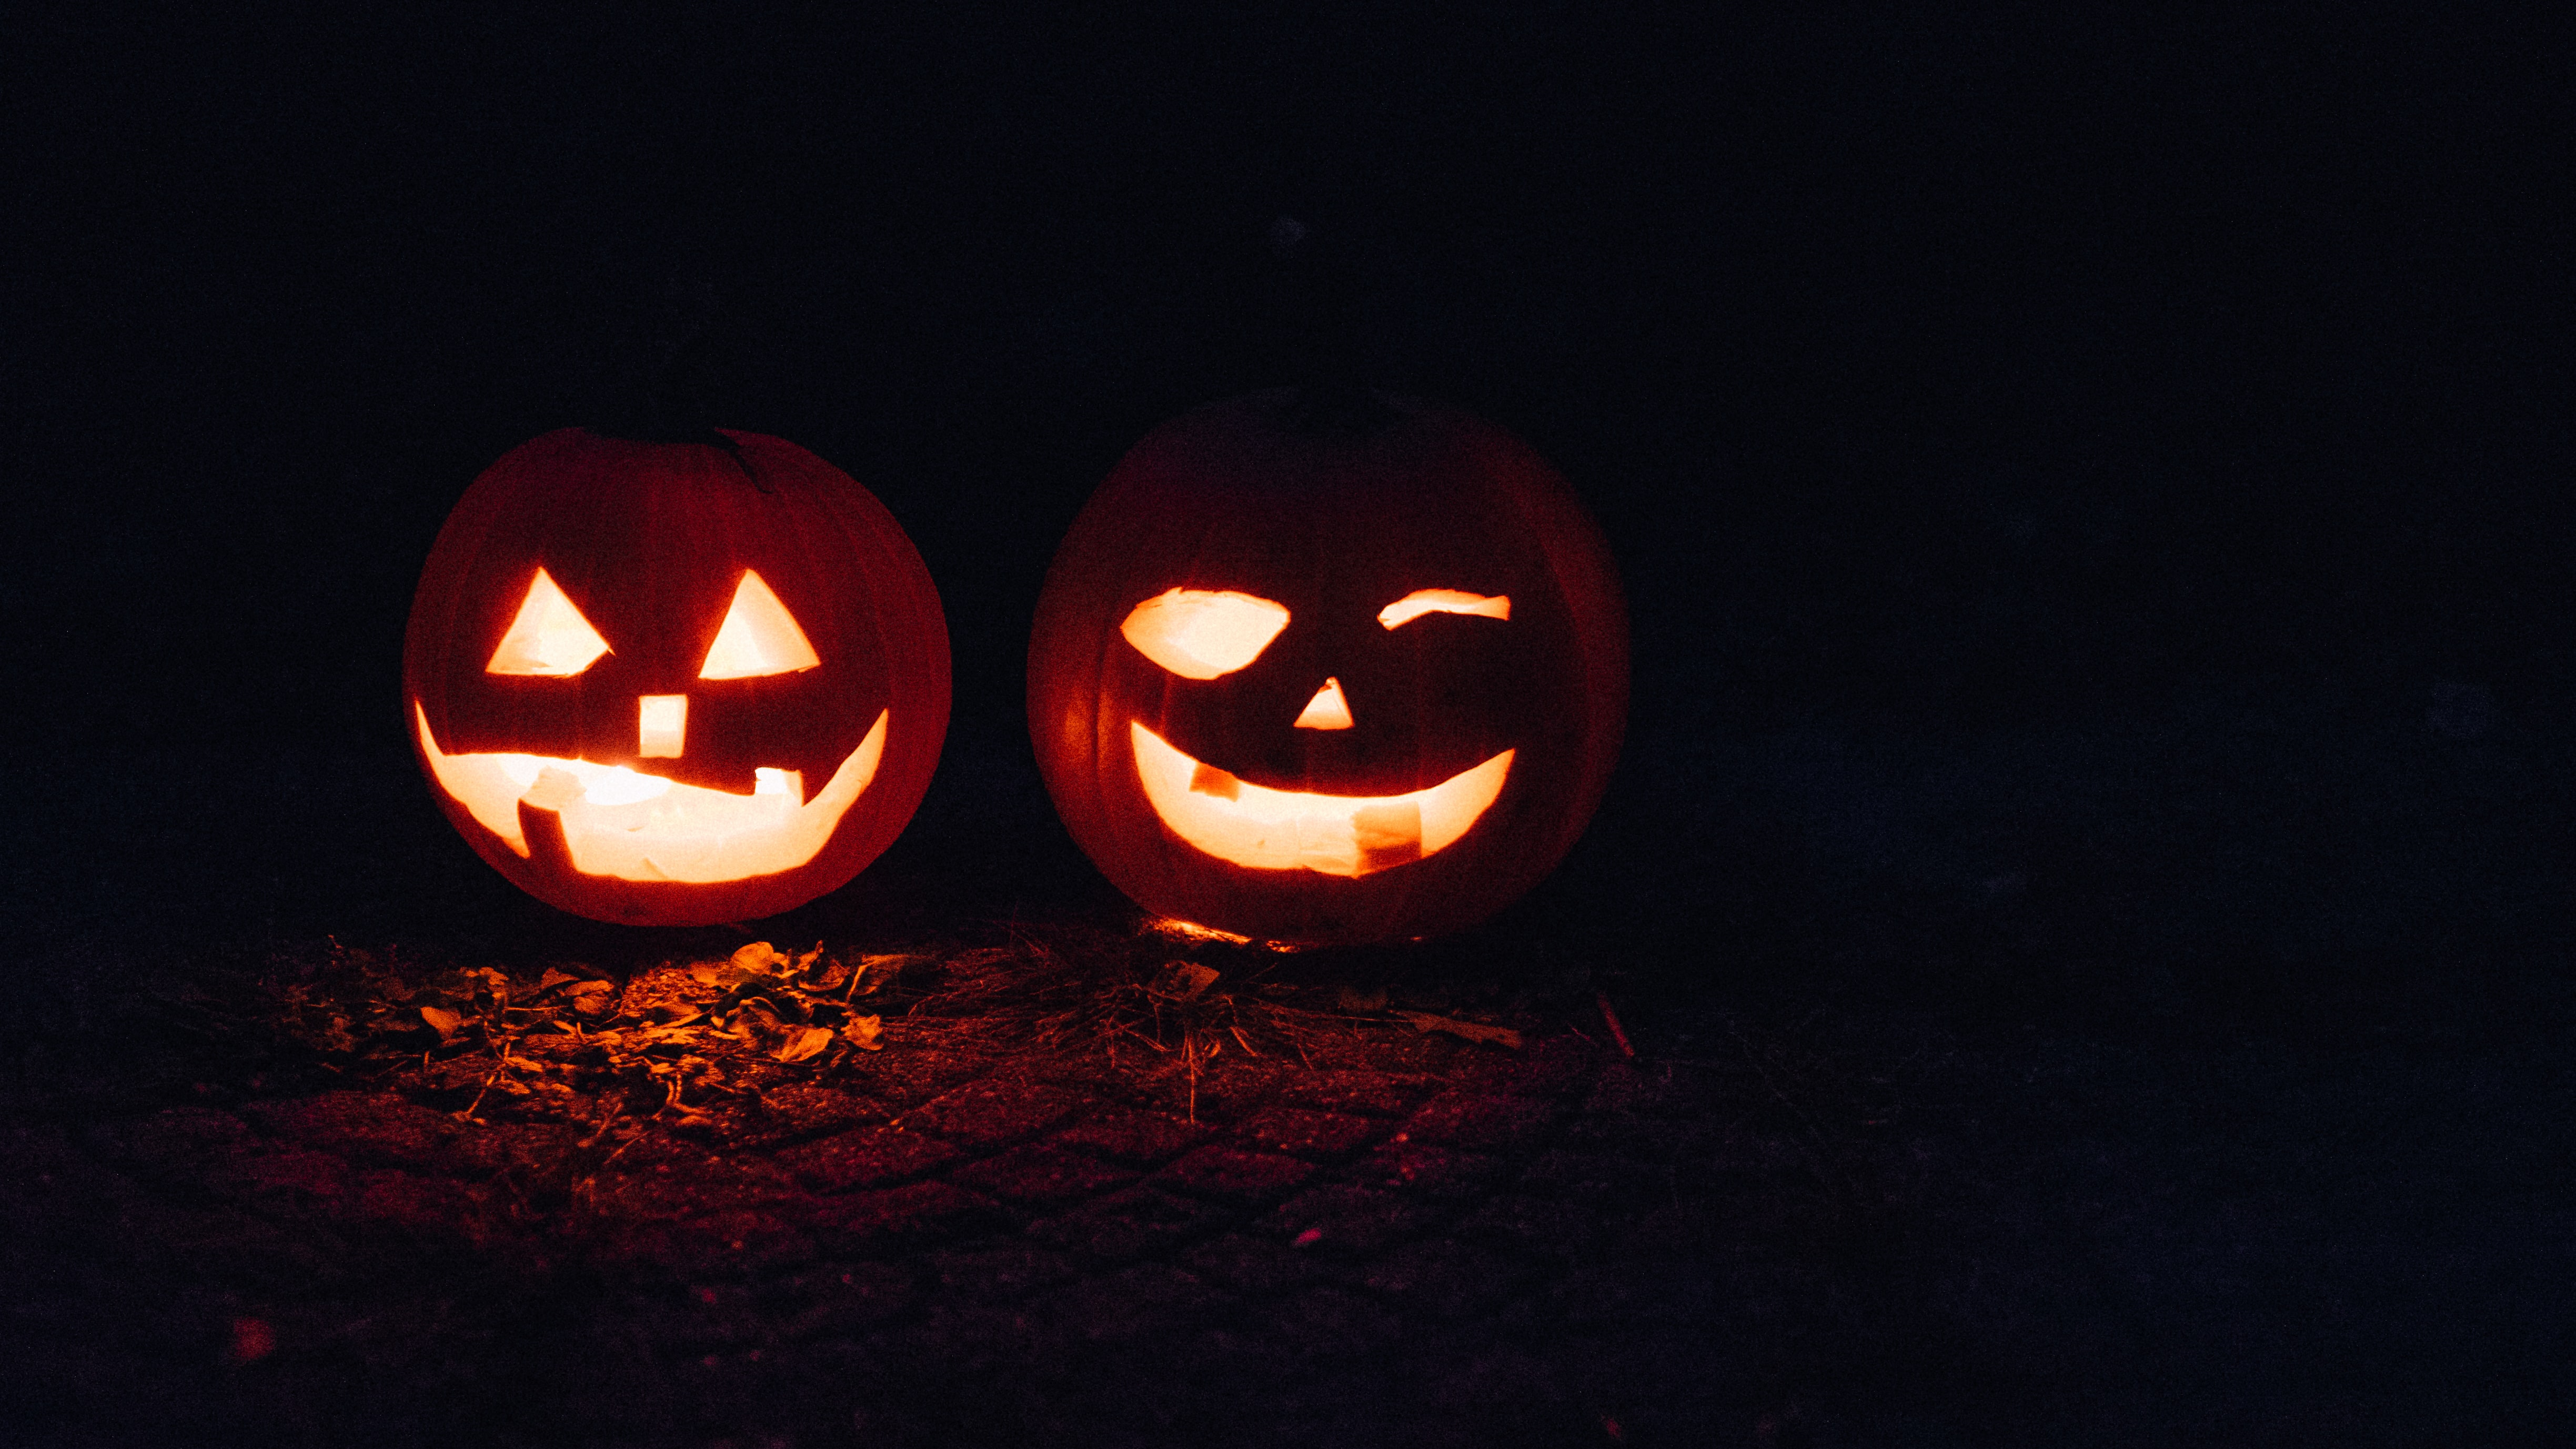 A pumpkin carved into a smiley face with shapes as the eyes and nose during Halloween as a lantern